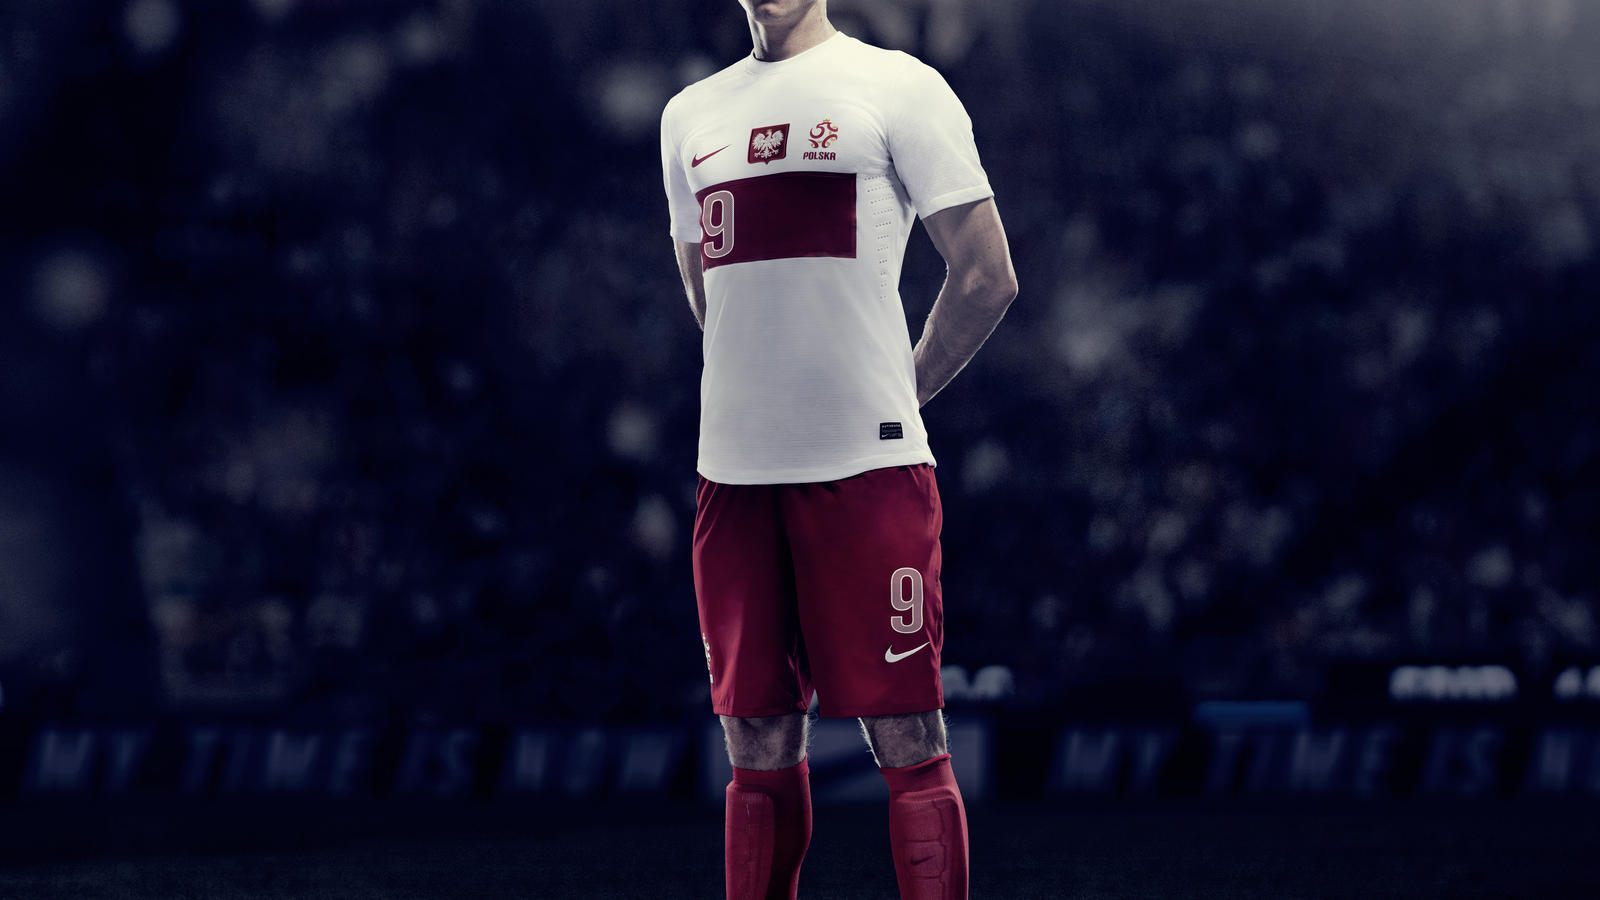 Lewandowski_poland_Home_NTK_02